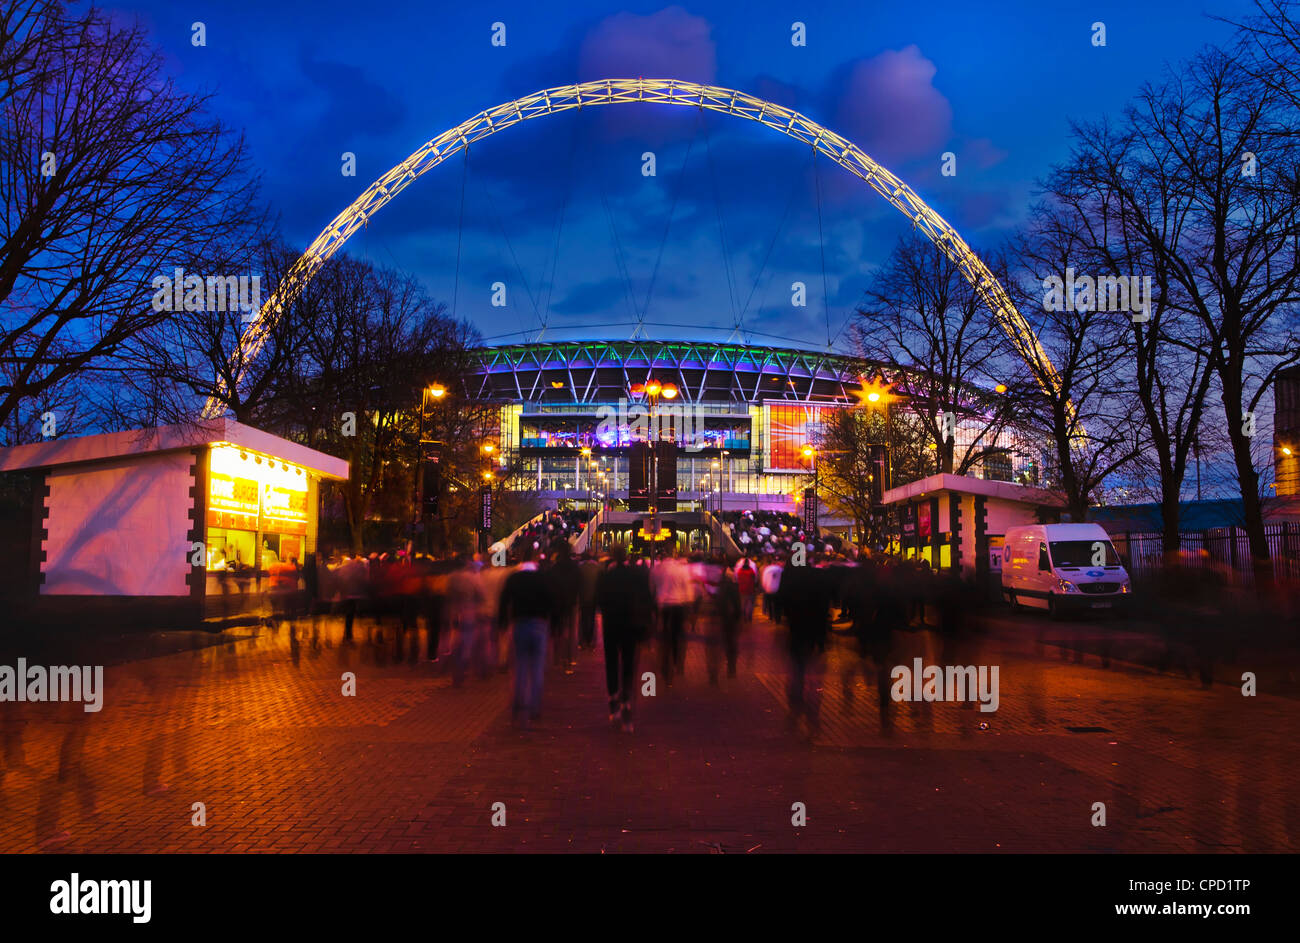 Wembley Stadium with England supporters entering the venue for international game, London, England, United Kingdom, - Stock Image